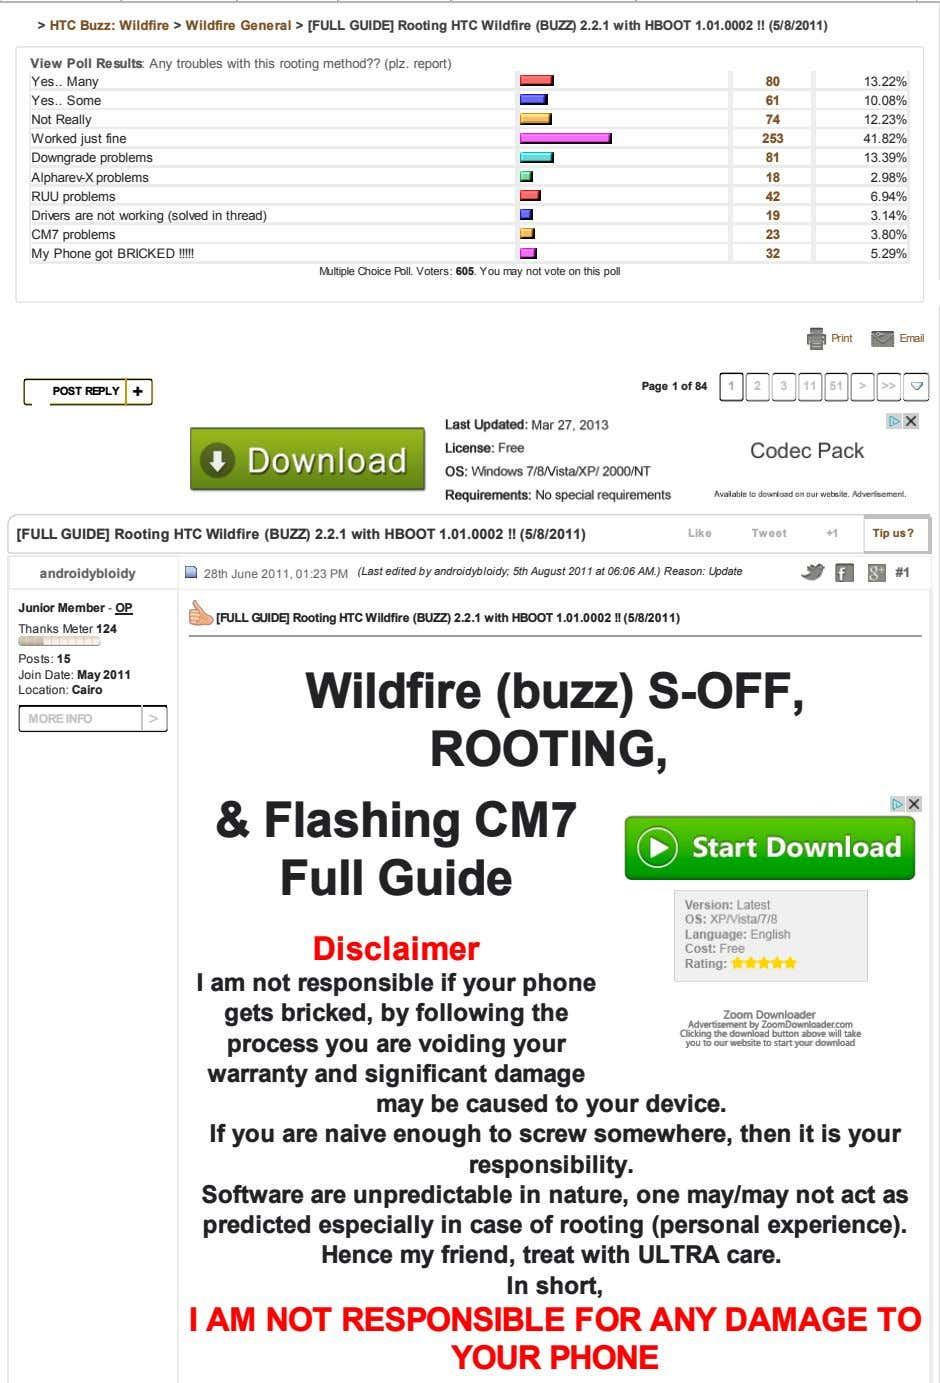 > HTC Buzz: Wildfire > Wildfire General > [FULL GUIDE] Rooting HTC Wildfire (BUZZ) 2.2.1